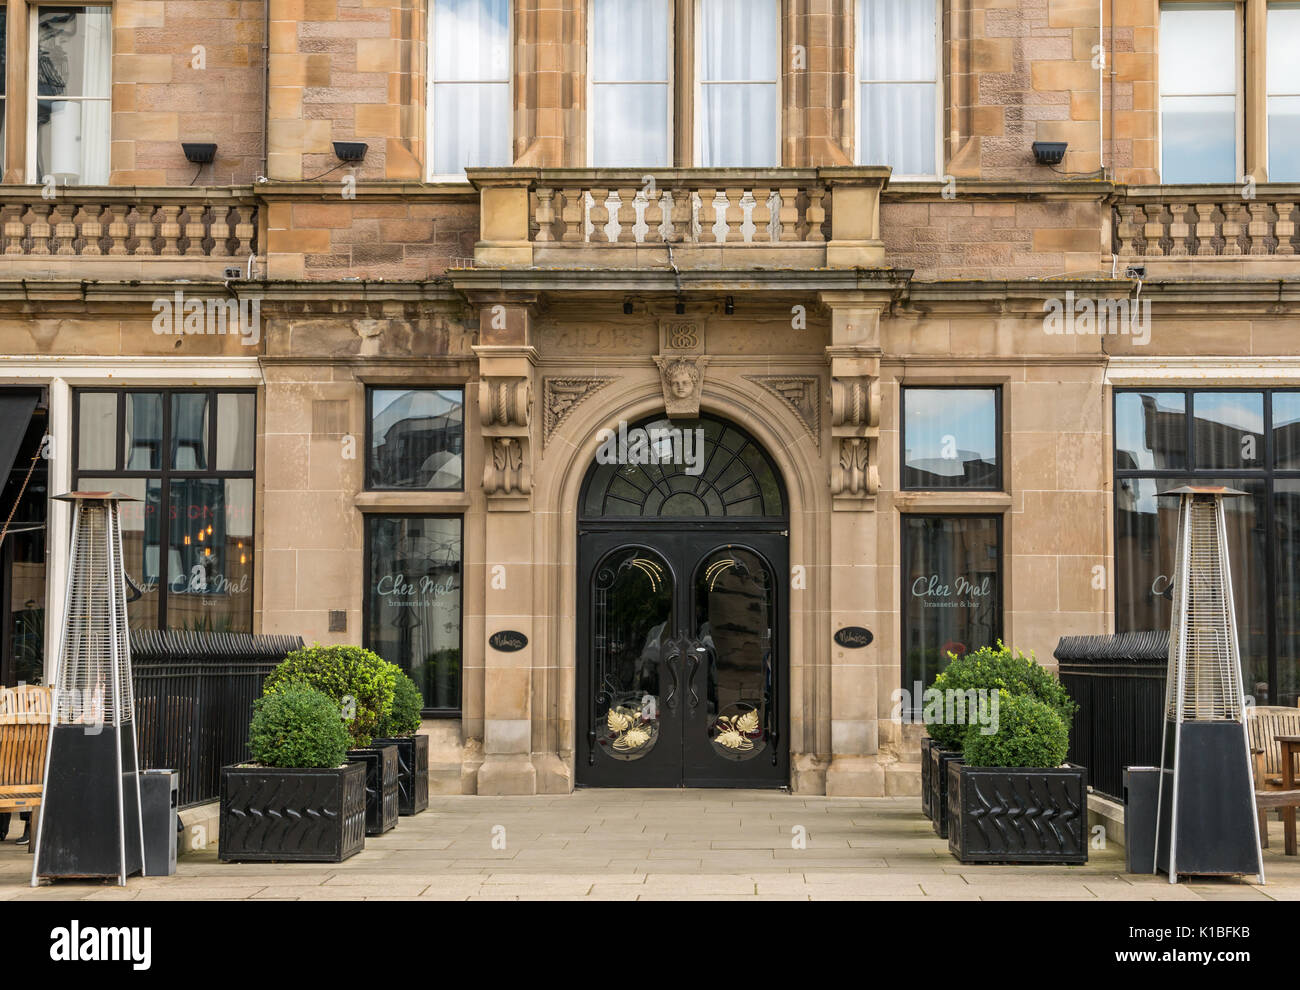 front-luxury-hotel-the-malmaison-and-res